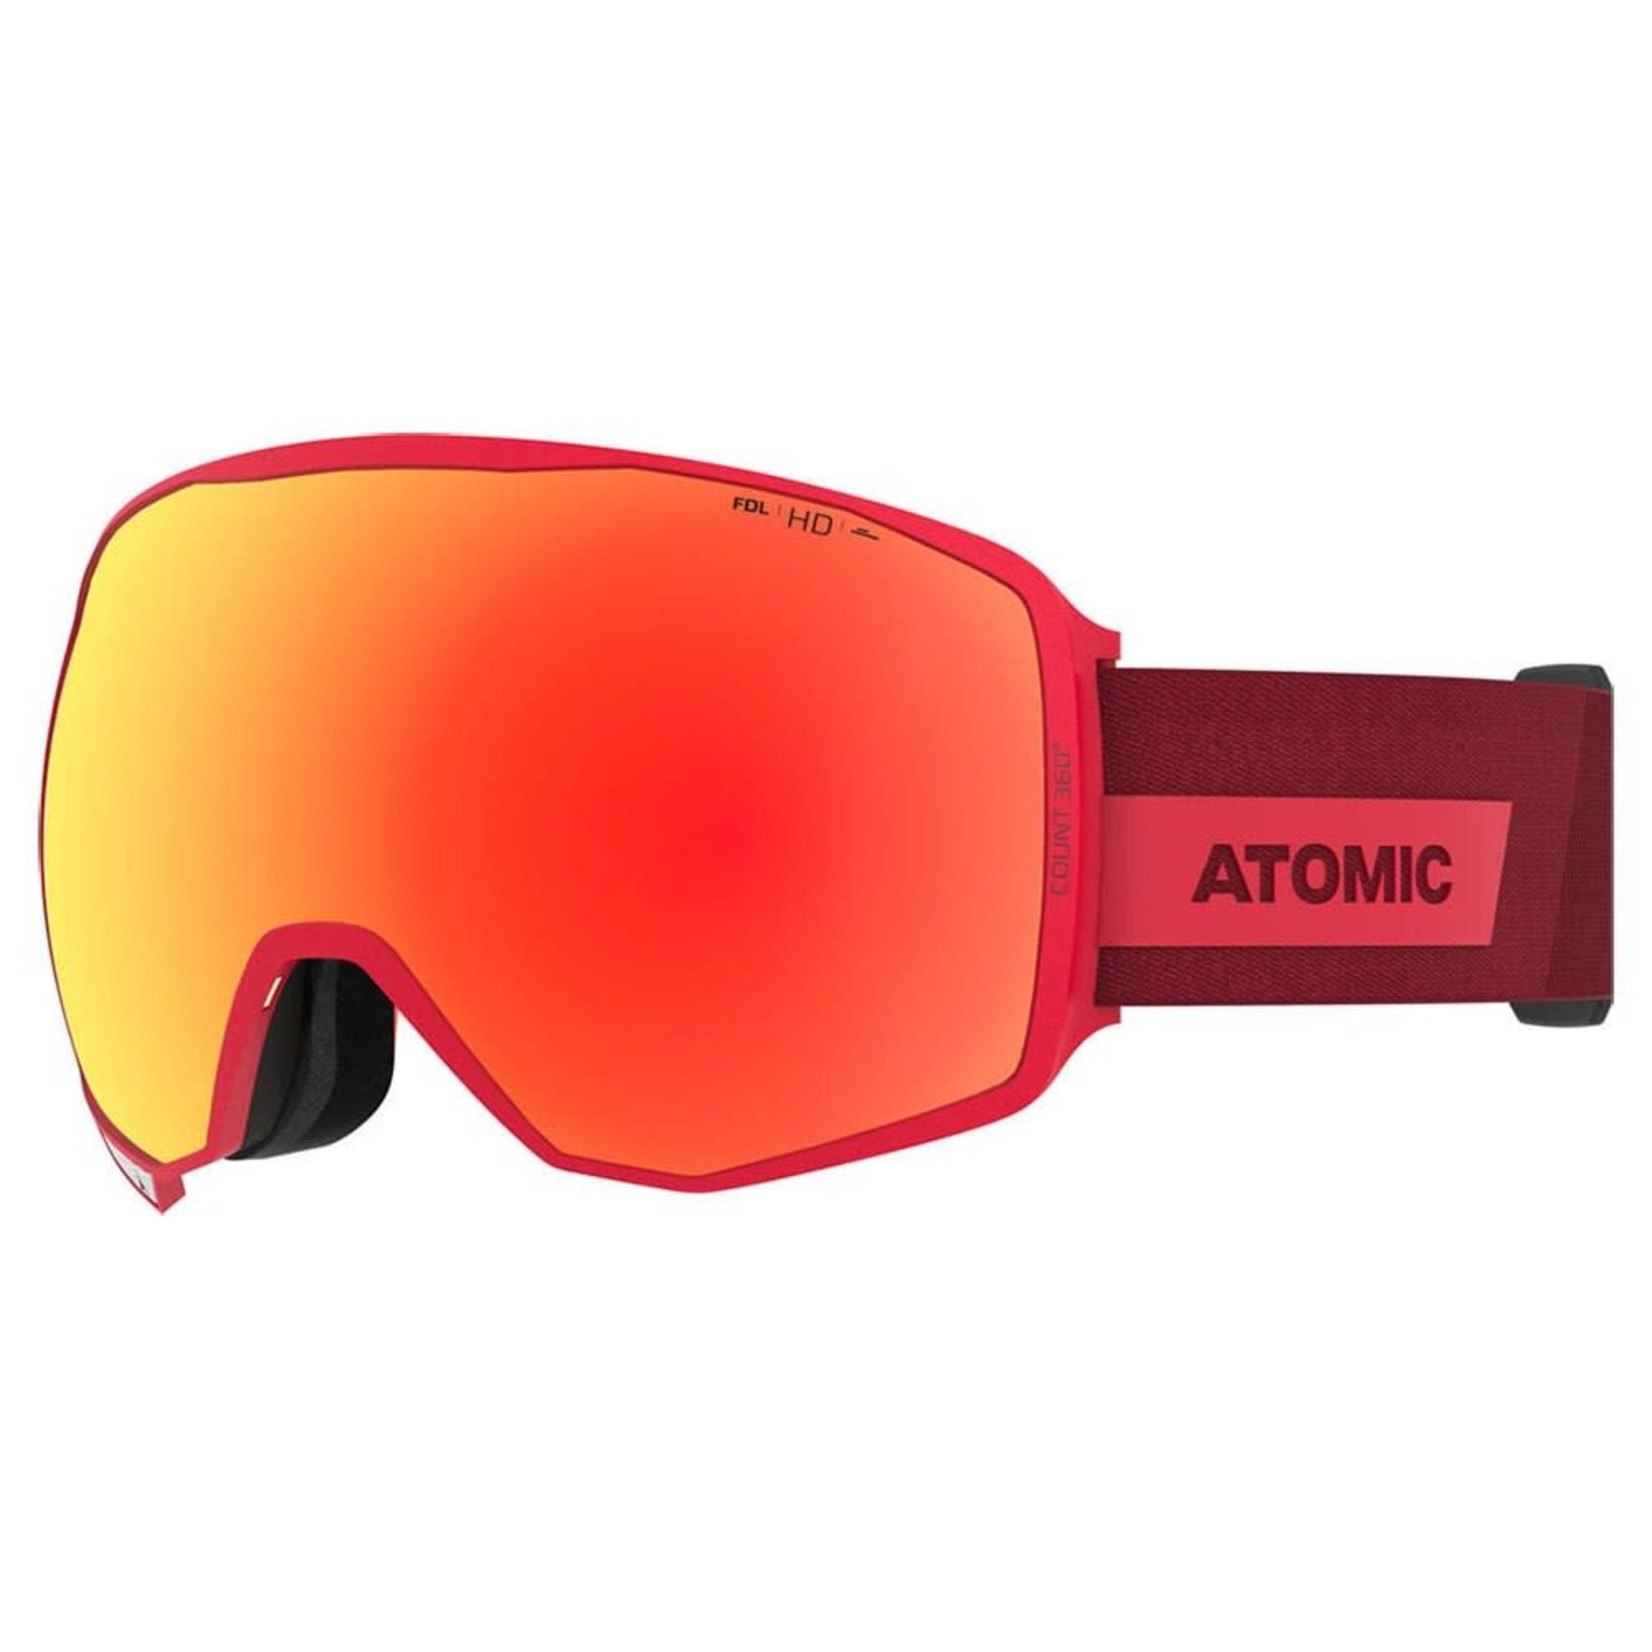 Atomic Atomic Count 360 HD Goggle - Unisex